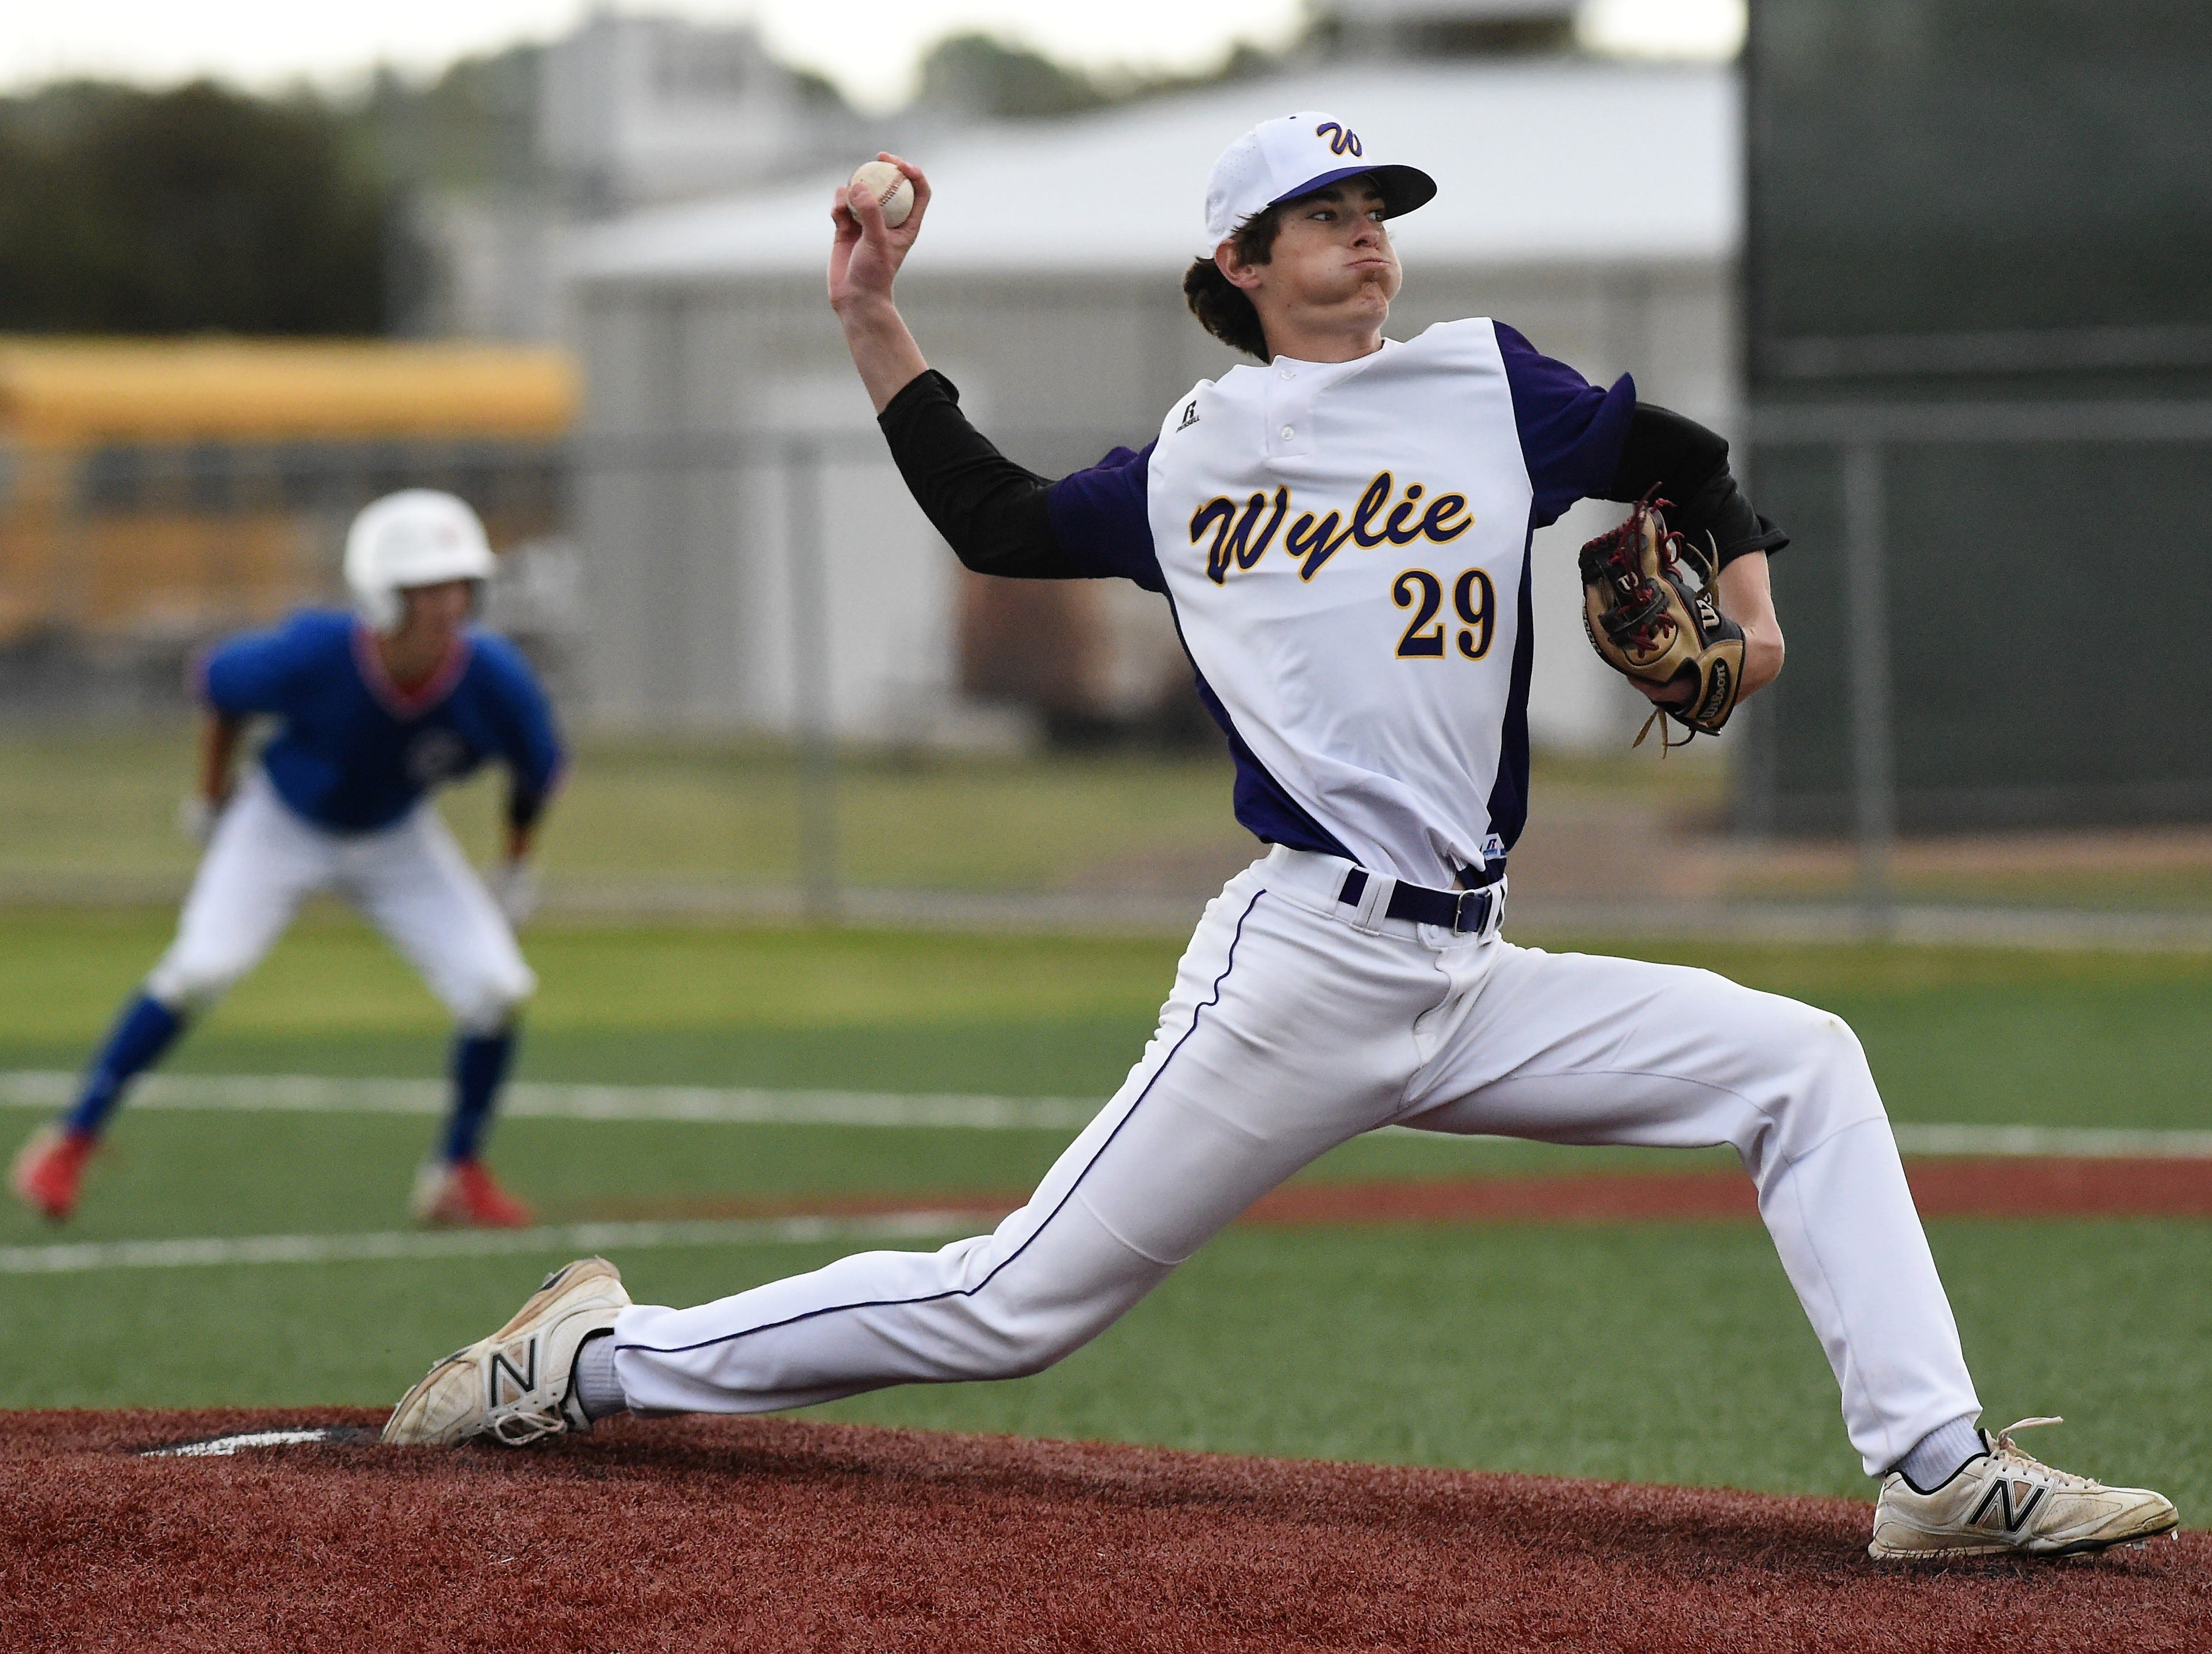 Wylie reliever Walker Piland (29) pitches against Cooper at Bulldog Field on Friday, April 12, 2019.